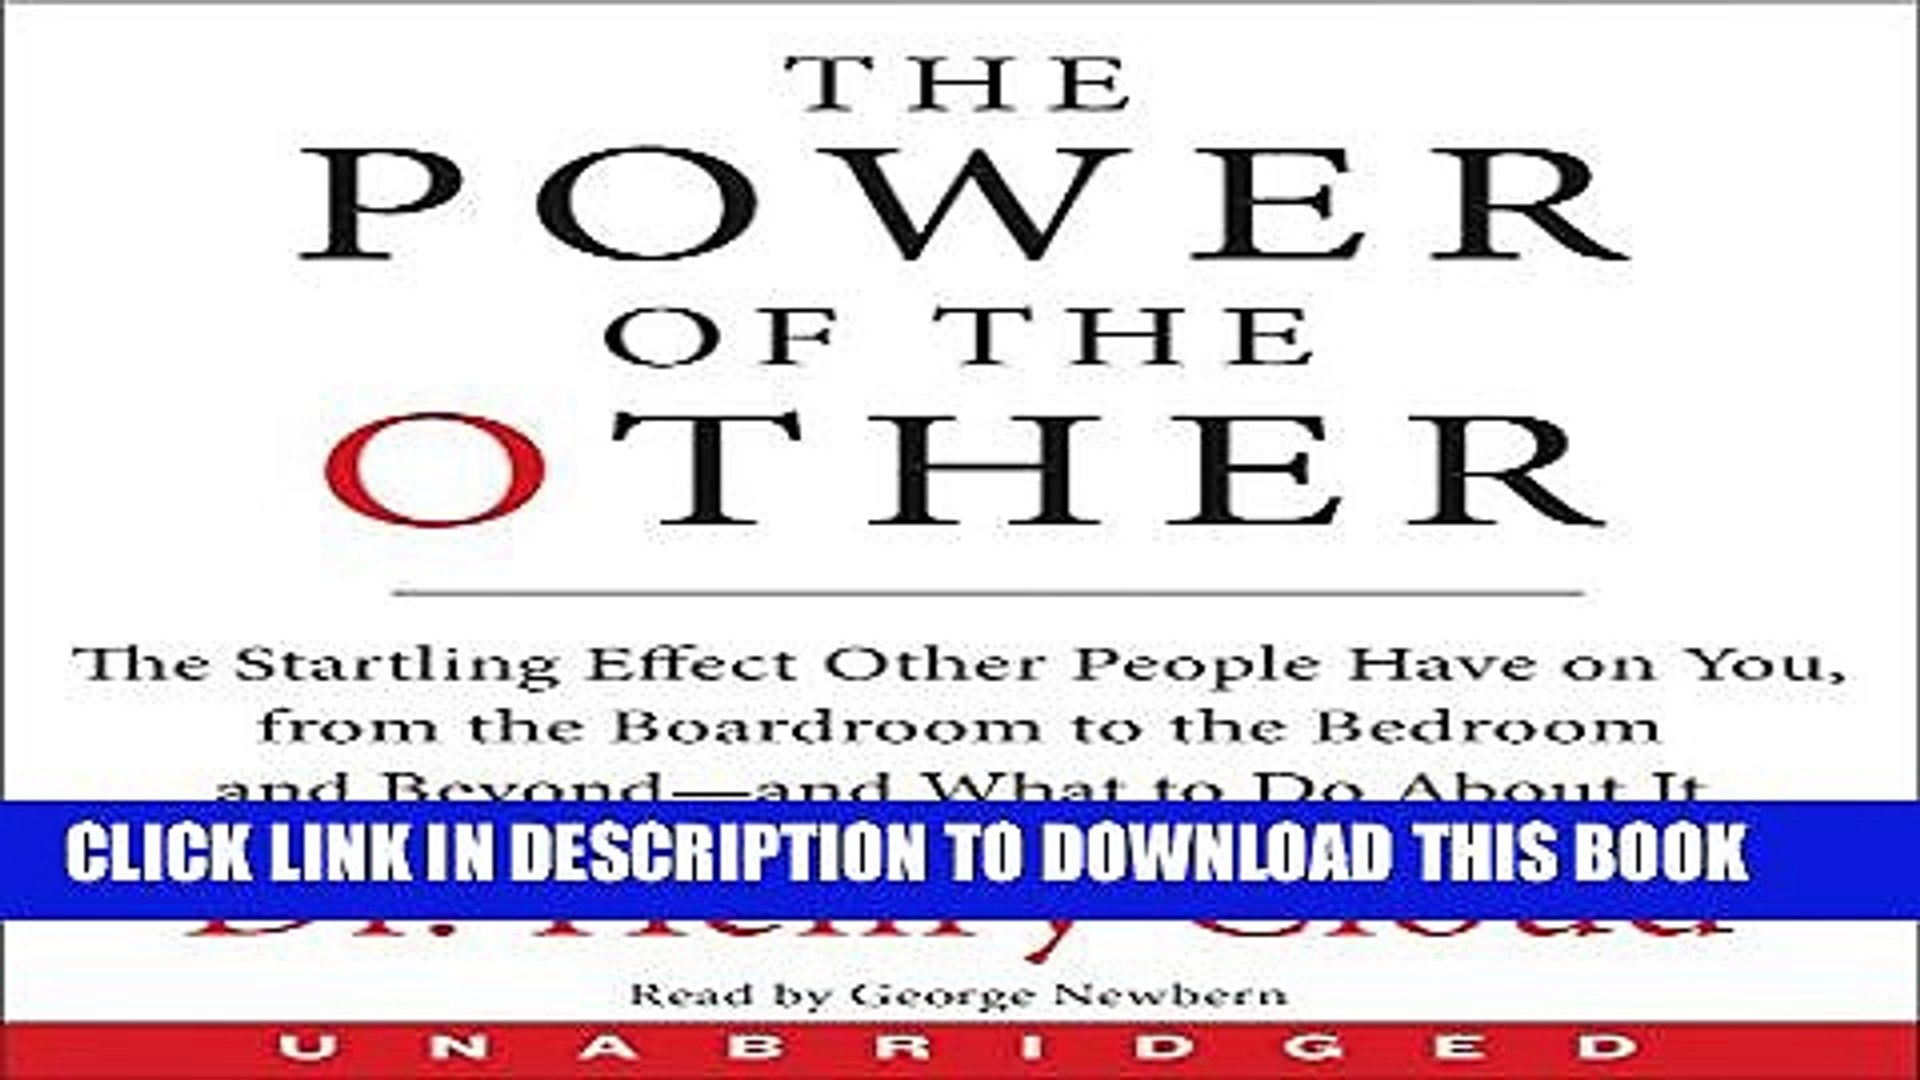 New Book The Power of the Other CD: The startling effect other people have on you, from the